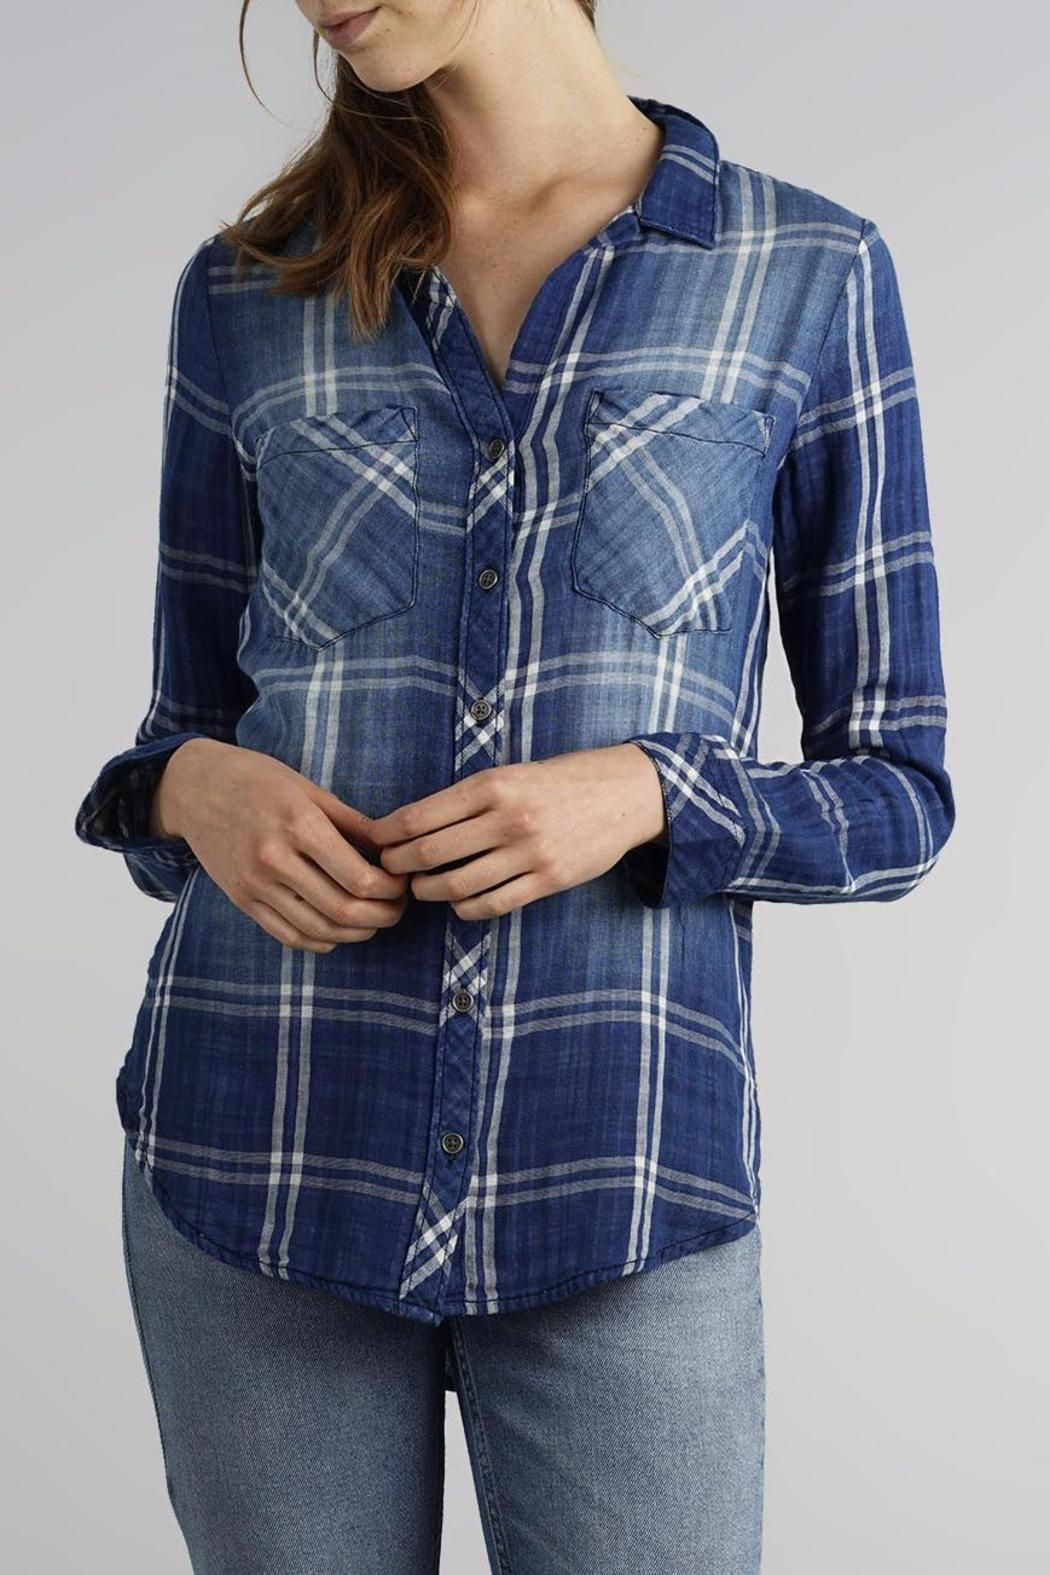 """Who needs a regular plaid shirt when you can have a plaid shirt with a denim faded look? This """"lived-in"""" top is a great way to spunk up your """"denim on denim"""" look without having to wear too much denim. Plaid Denim Shirt by Thread & Supply. Clothing - Tops - Blouses & Shirts Cleveland Ohio"""